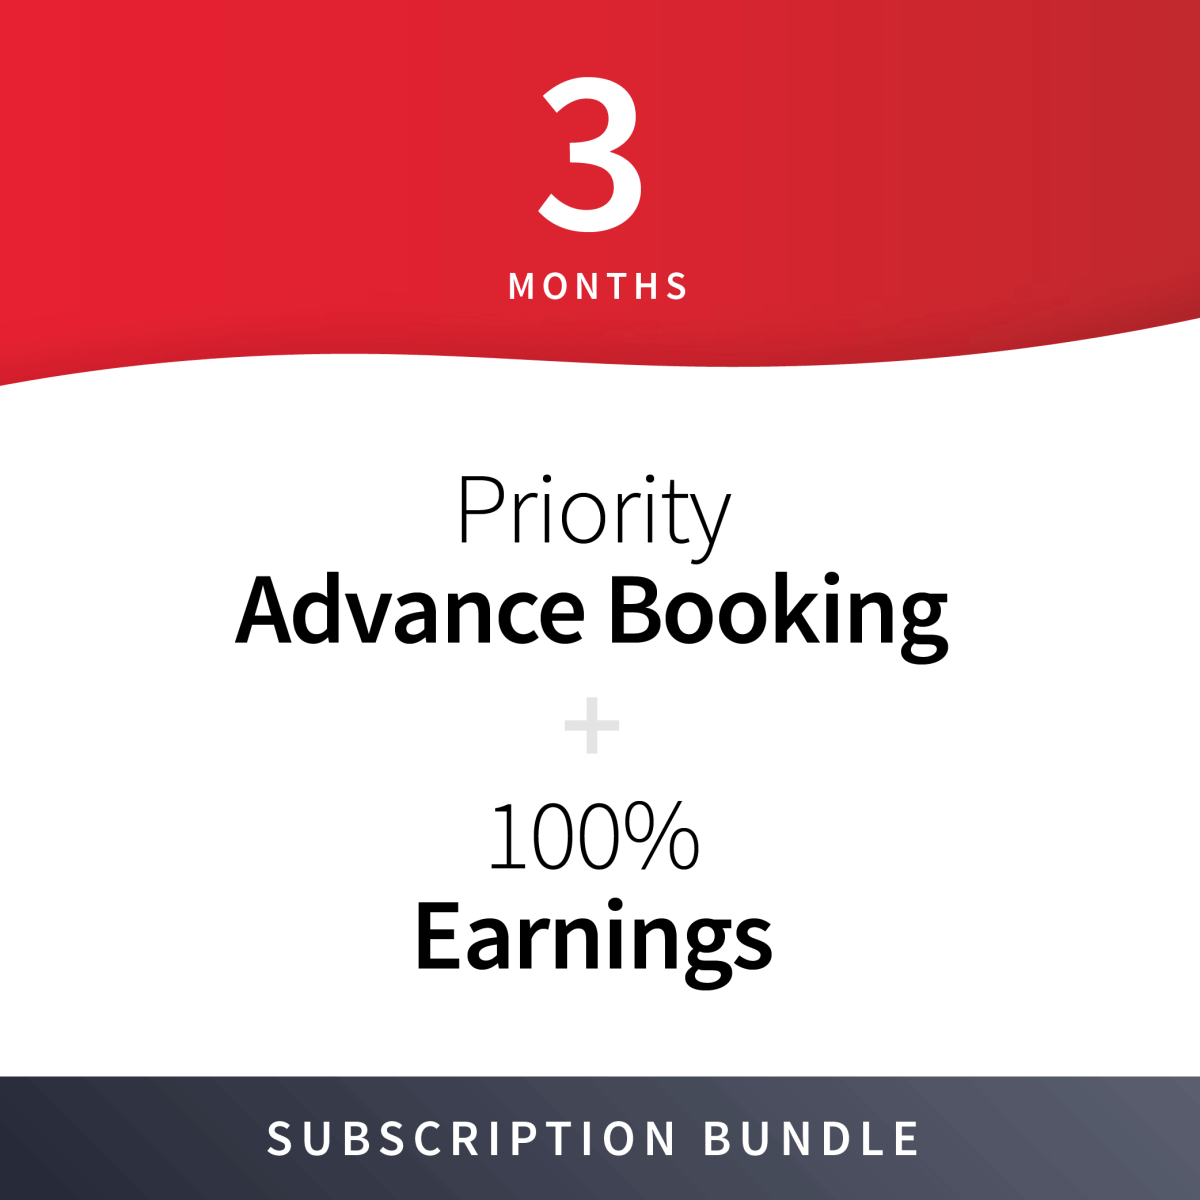 100% Earnings + Priority Advance Booking Subscription Bundle - 3 Months 5